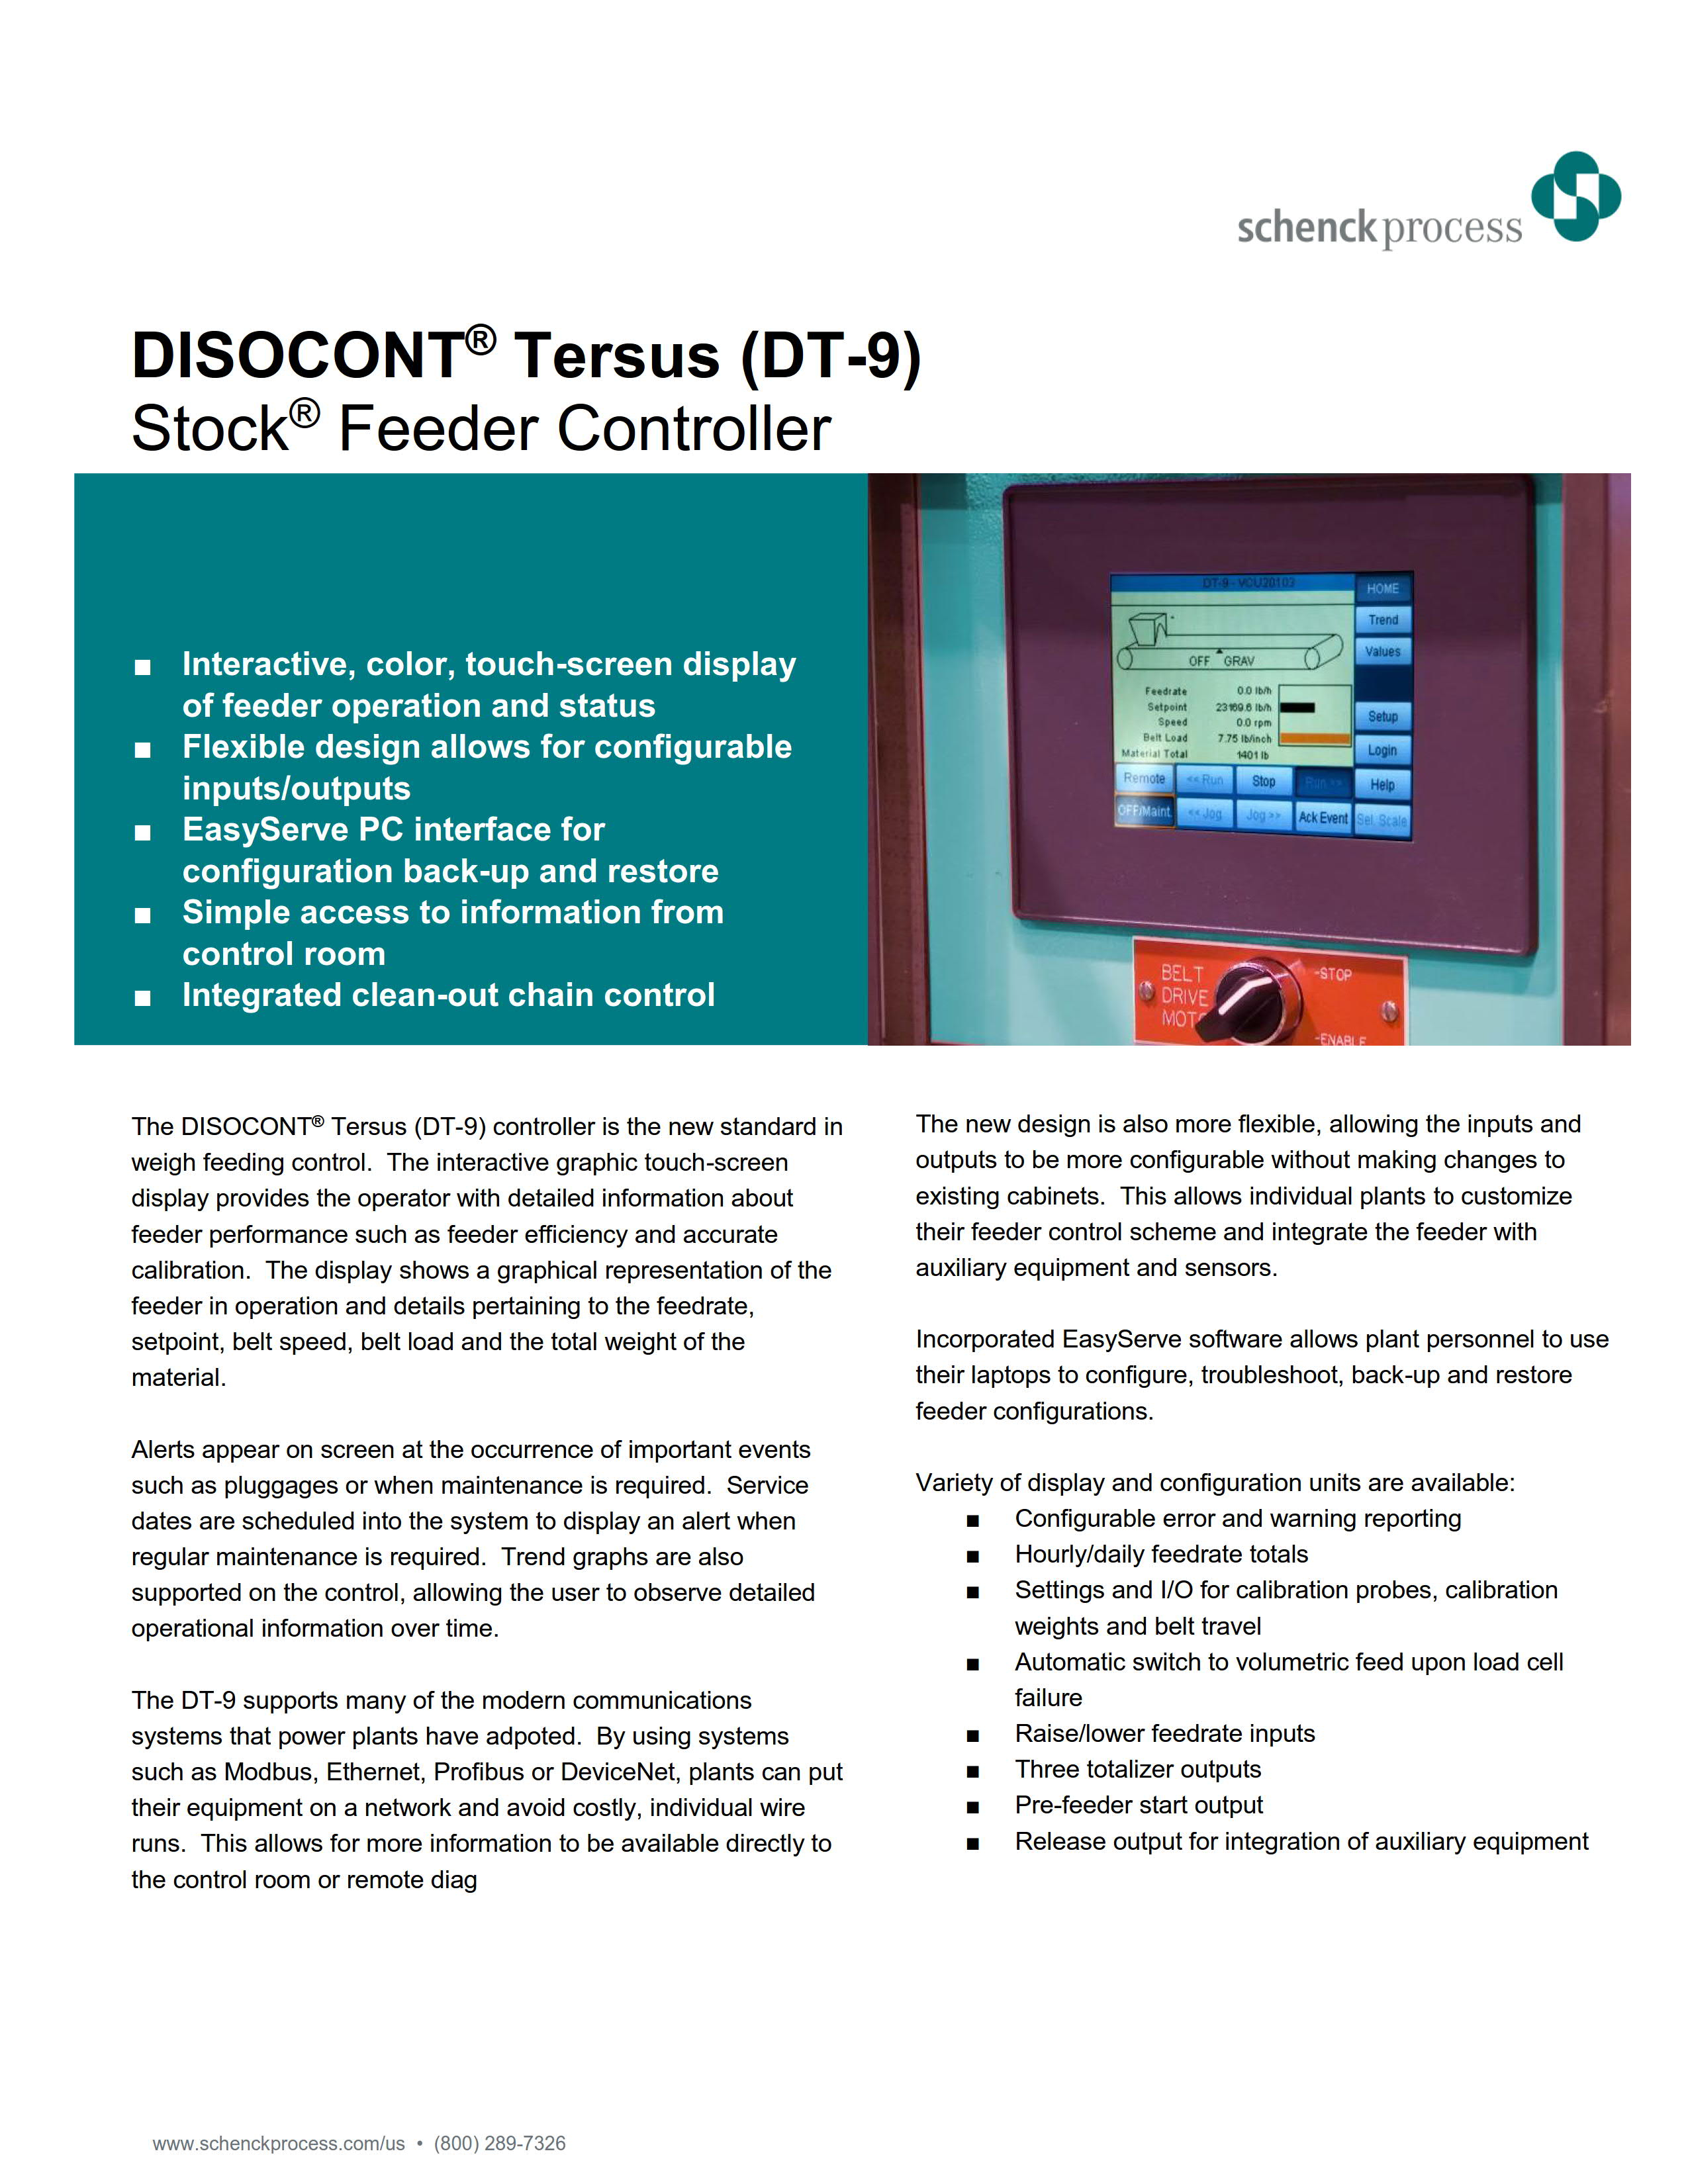 DISOCONT® Tersus (DT-9) Stock® Feeder Controller